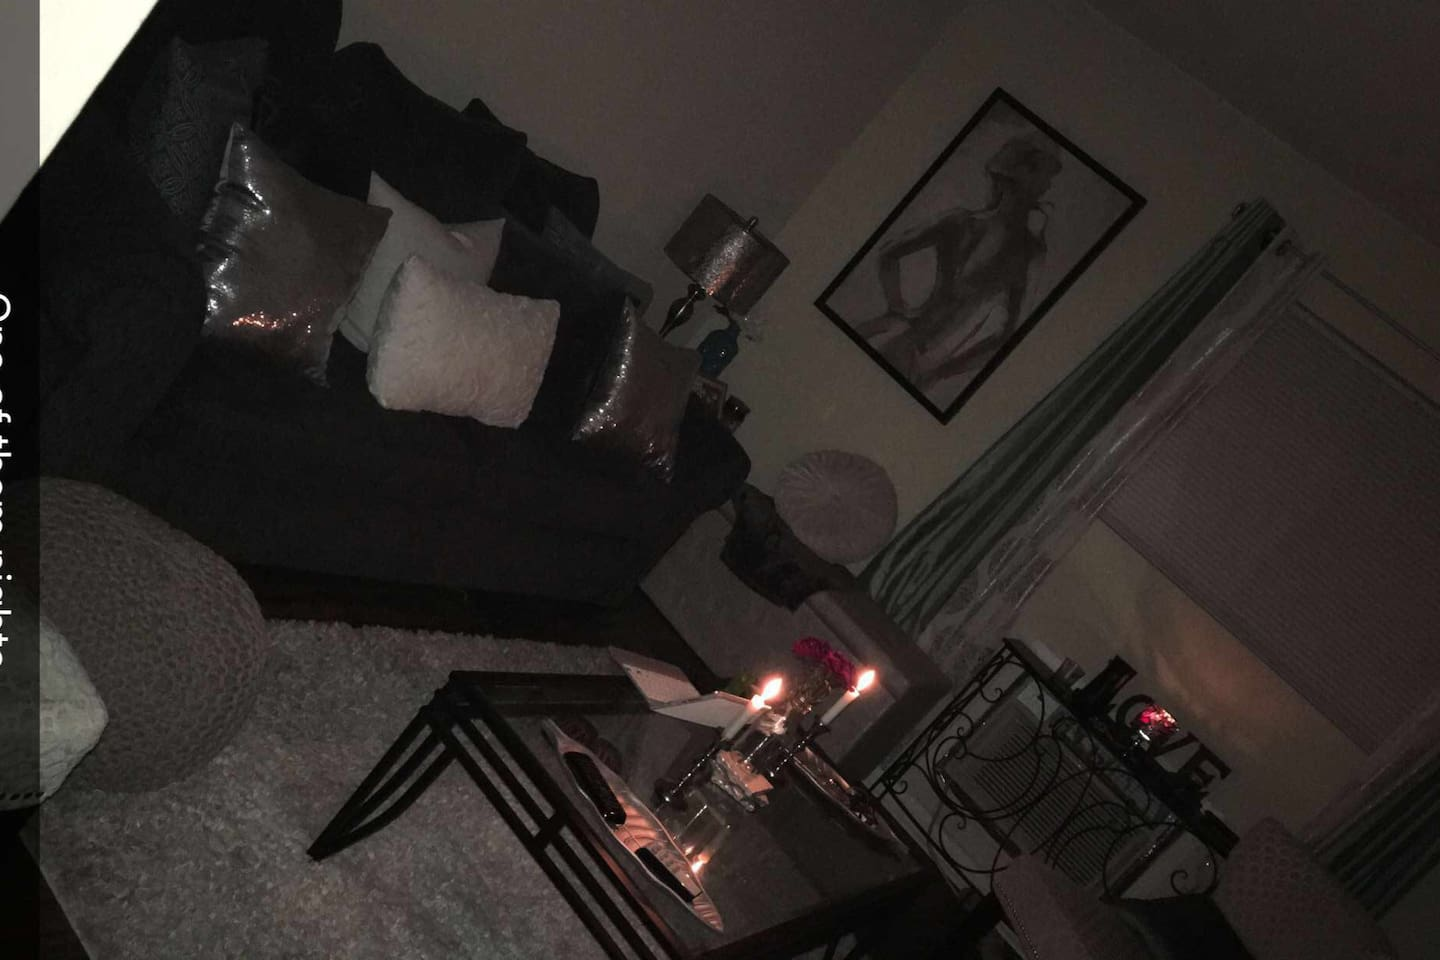 This is the living room of the aprtment fully decorated.